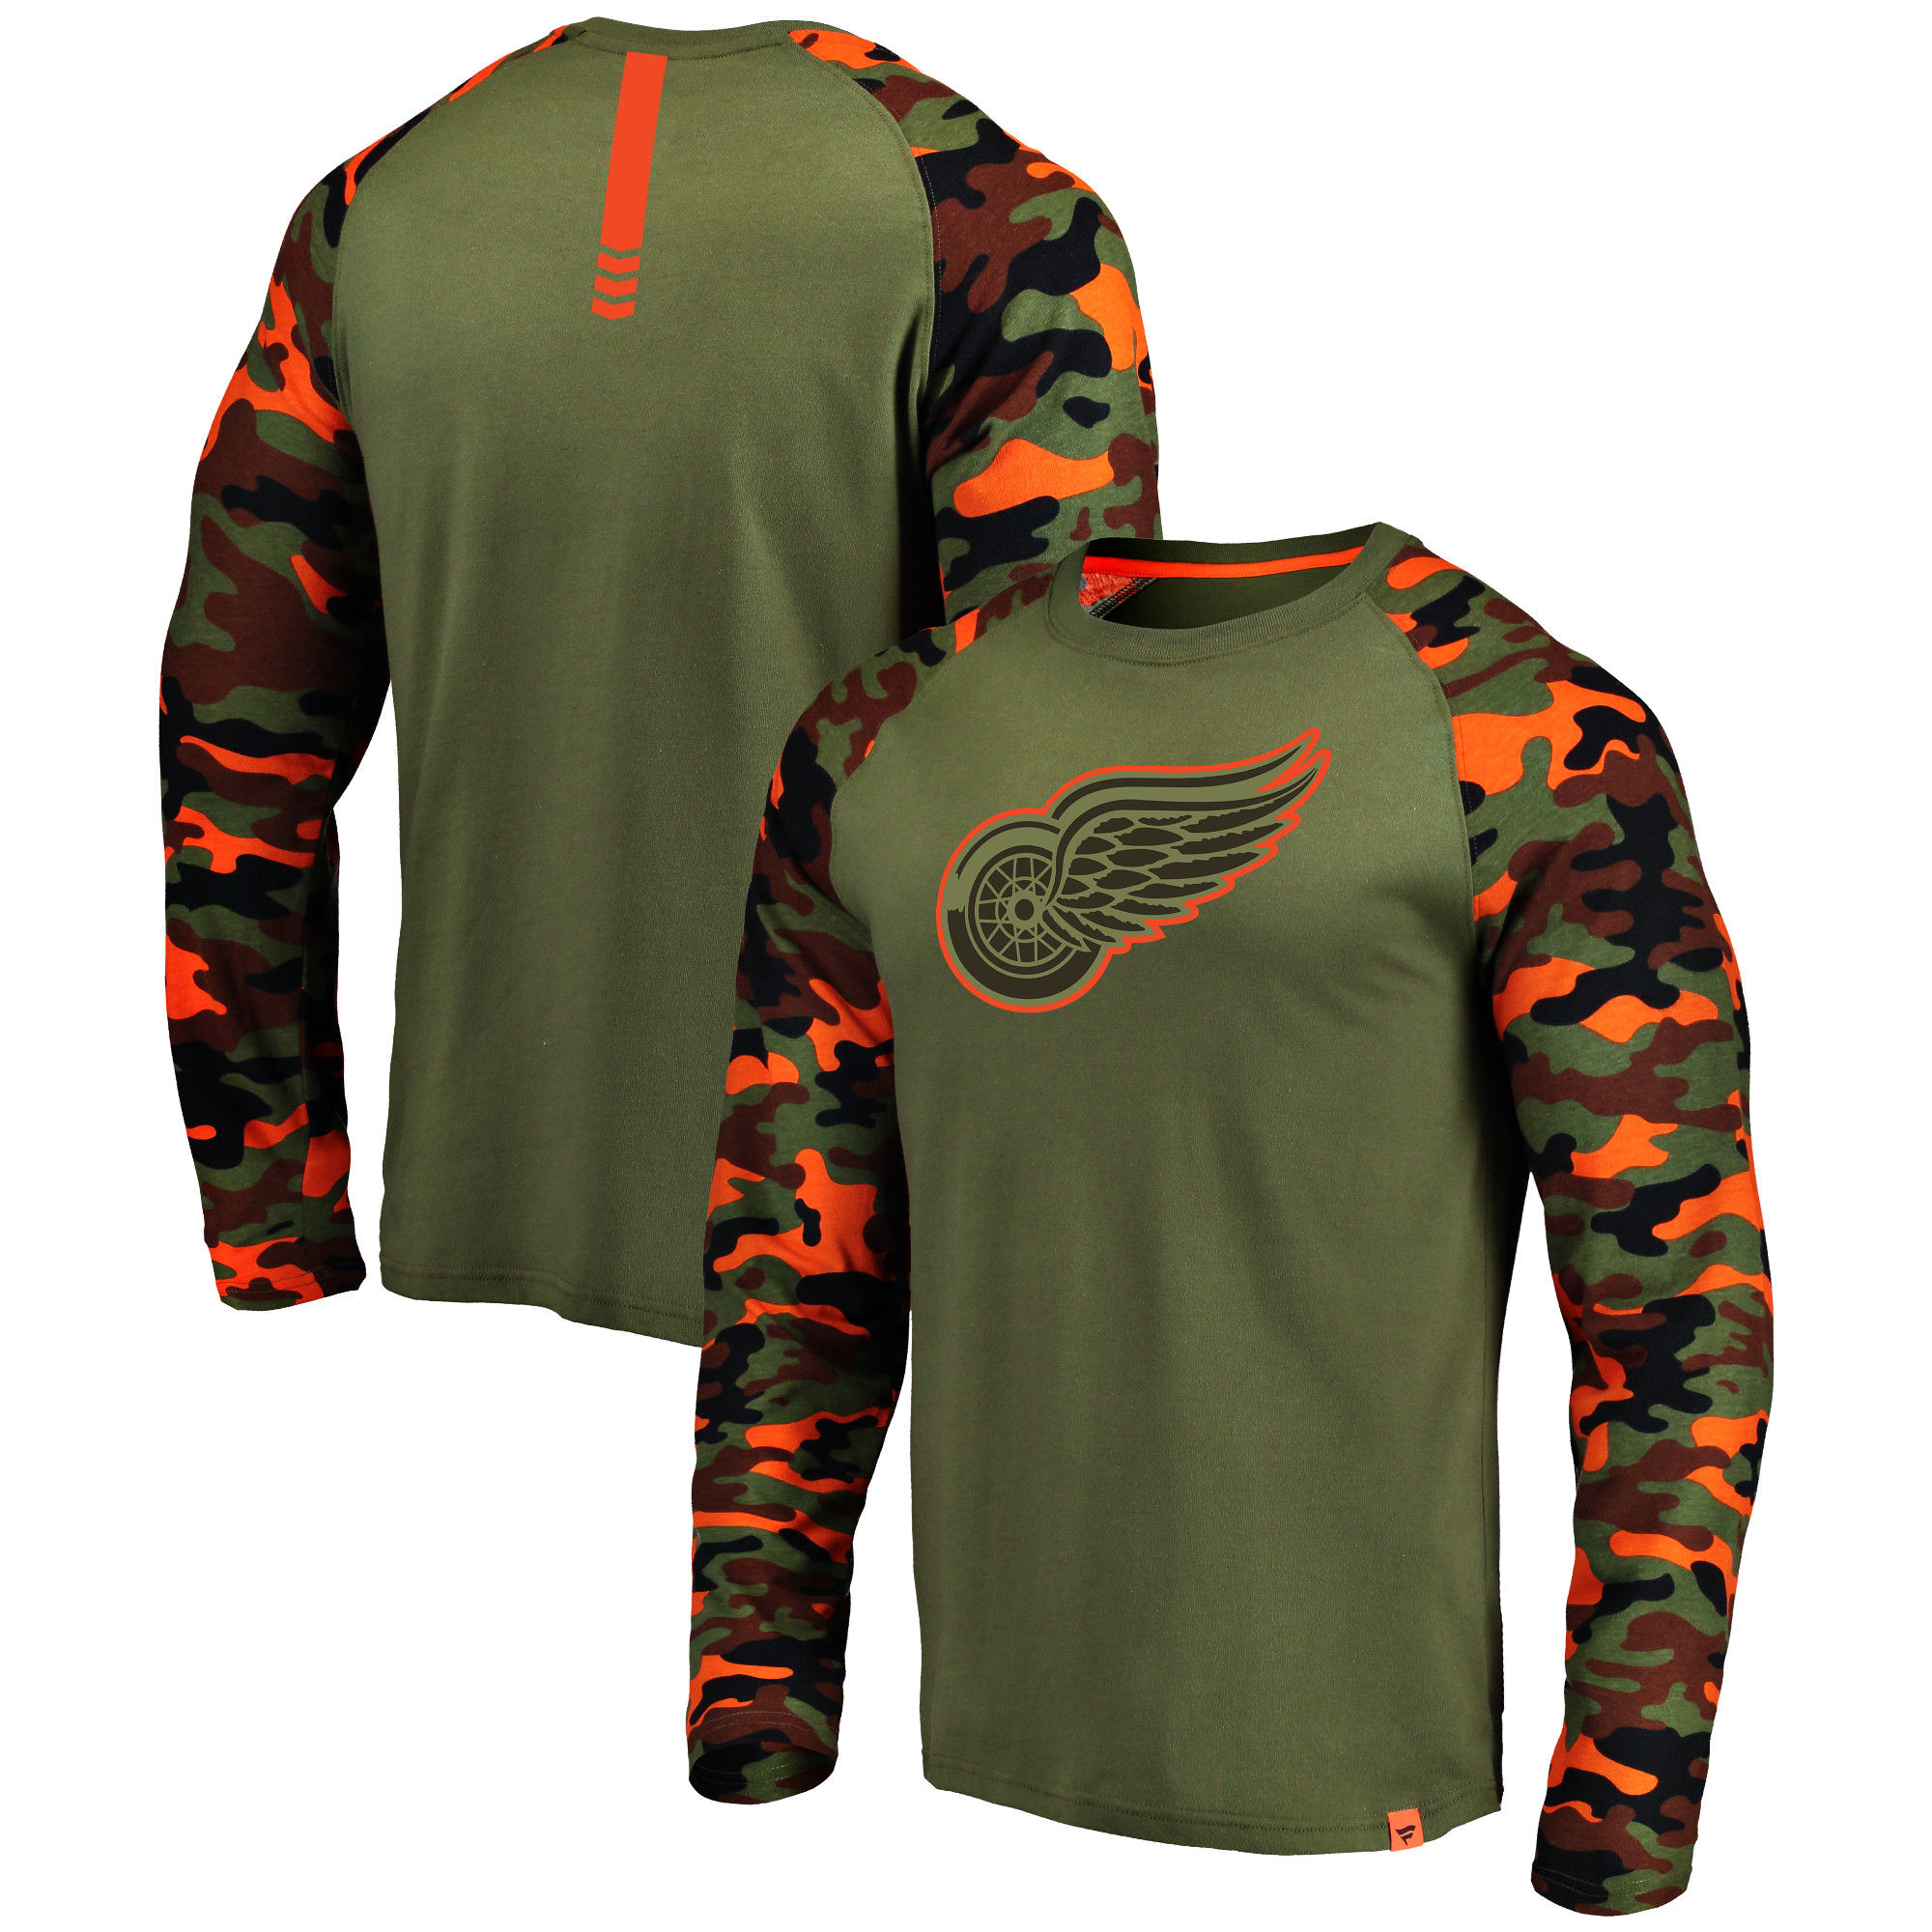 Detroit Red Wings Fanatics Branded Olive/Camo Recon Long Sleeve Raglan T-Shirt